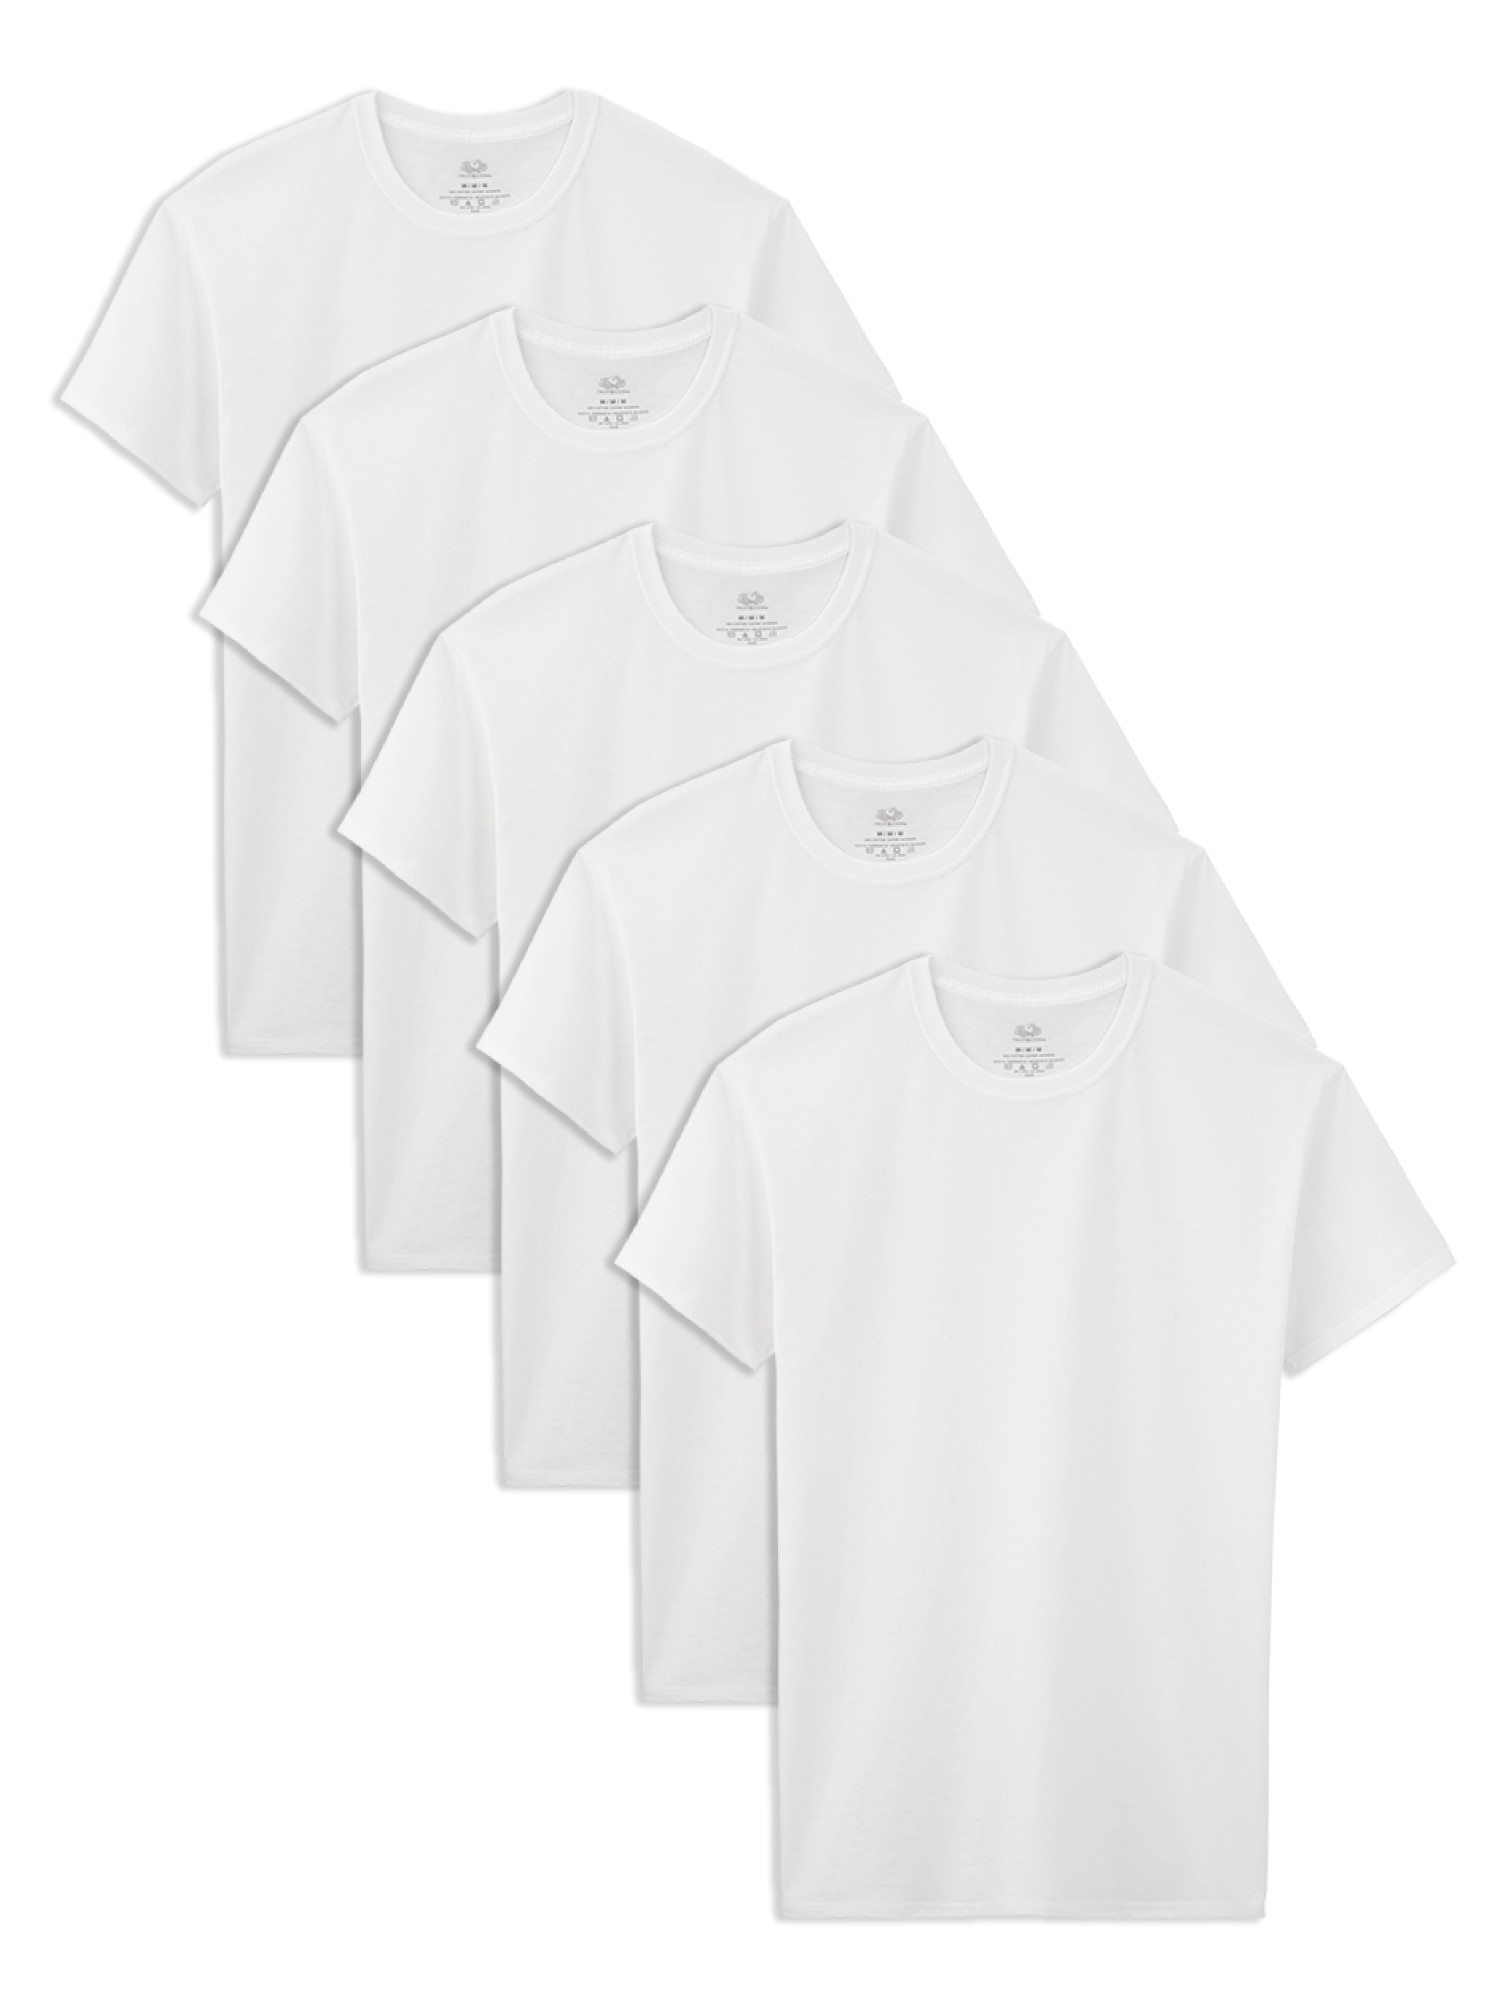 White Crew T-Shirts, 5 Pack (Little Boys & Big Boys)